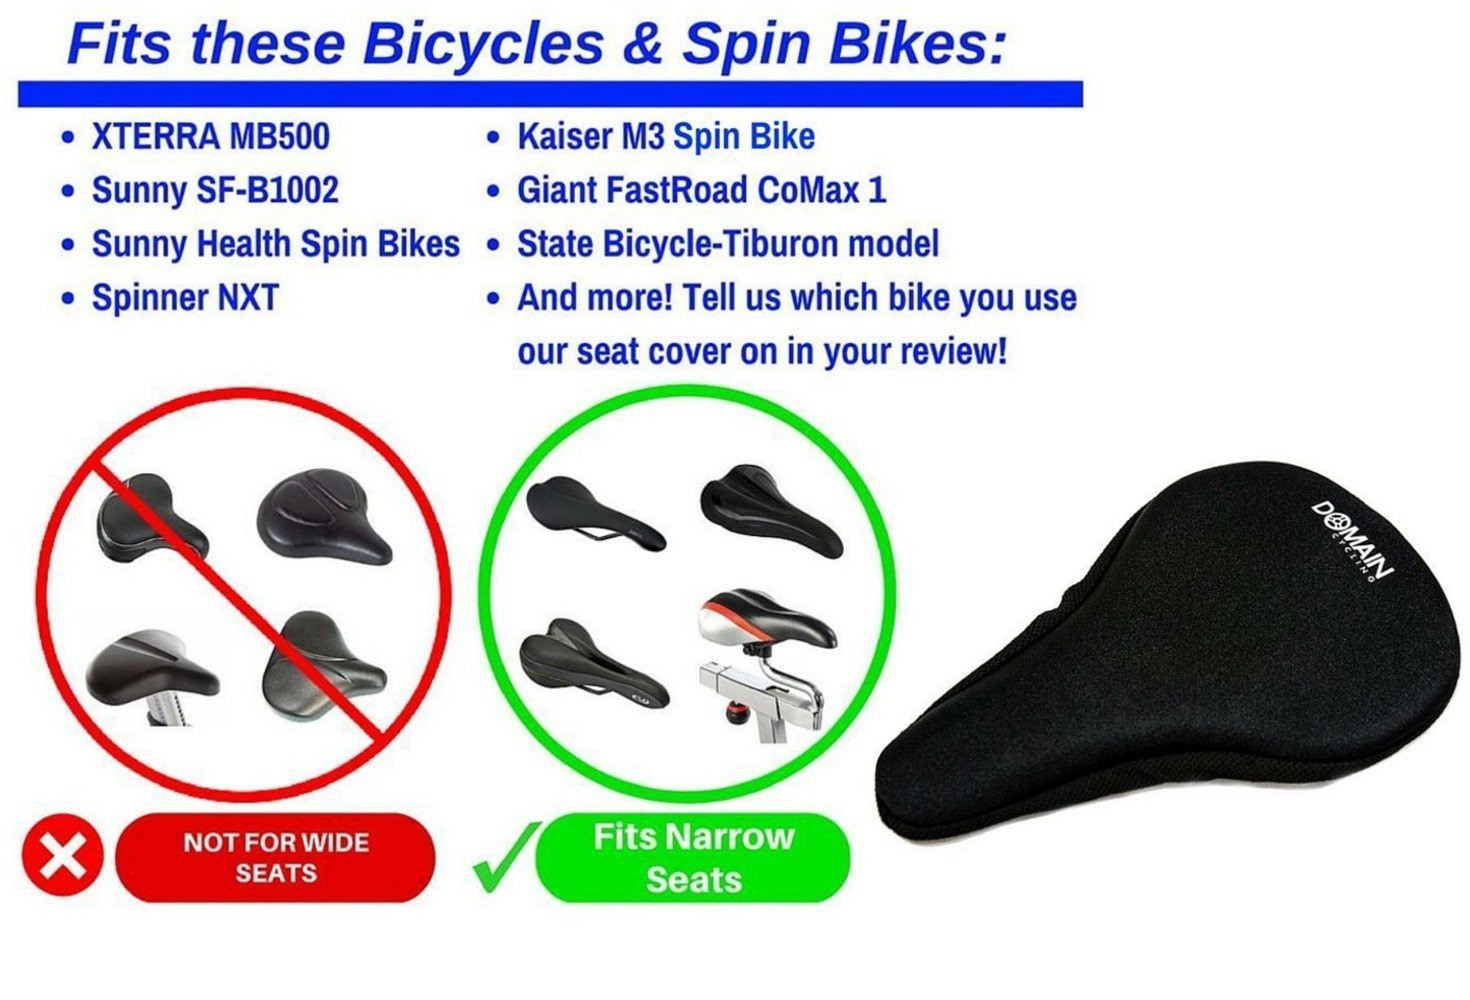 Premium Bike Gel Seat Cushion Cover 10.5''x7'' Domain Cycling - Most Comfortable Bicycle Saddle Pad for Spin Class or Outdoor Biking by Domain Cycling (Image #4)